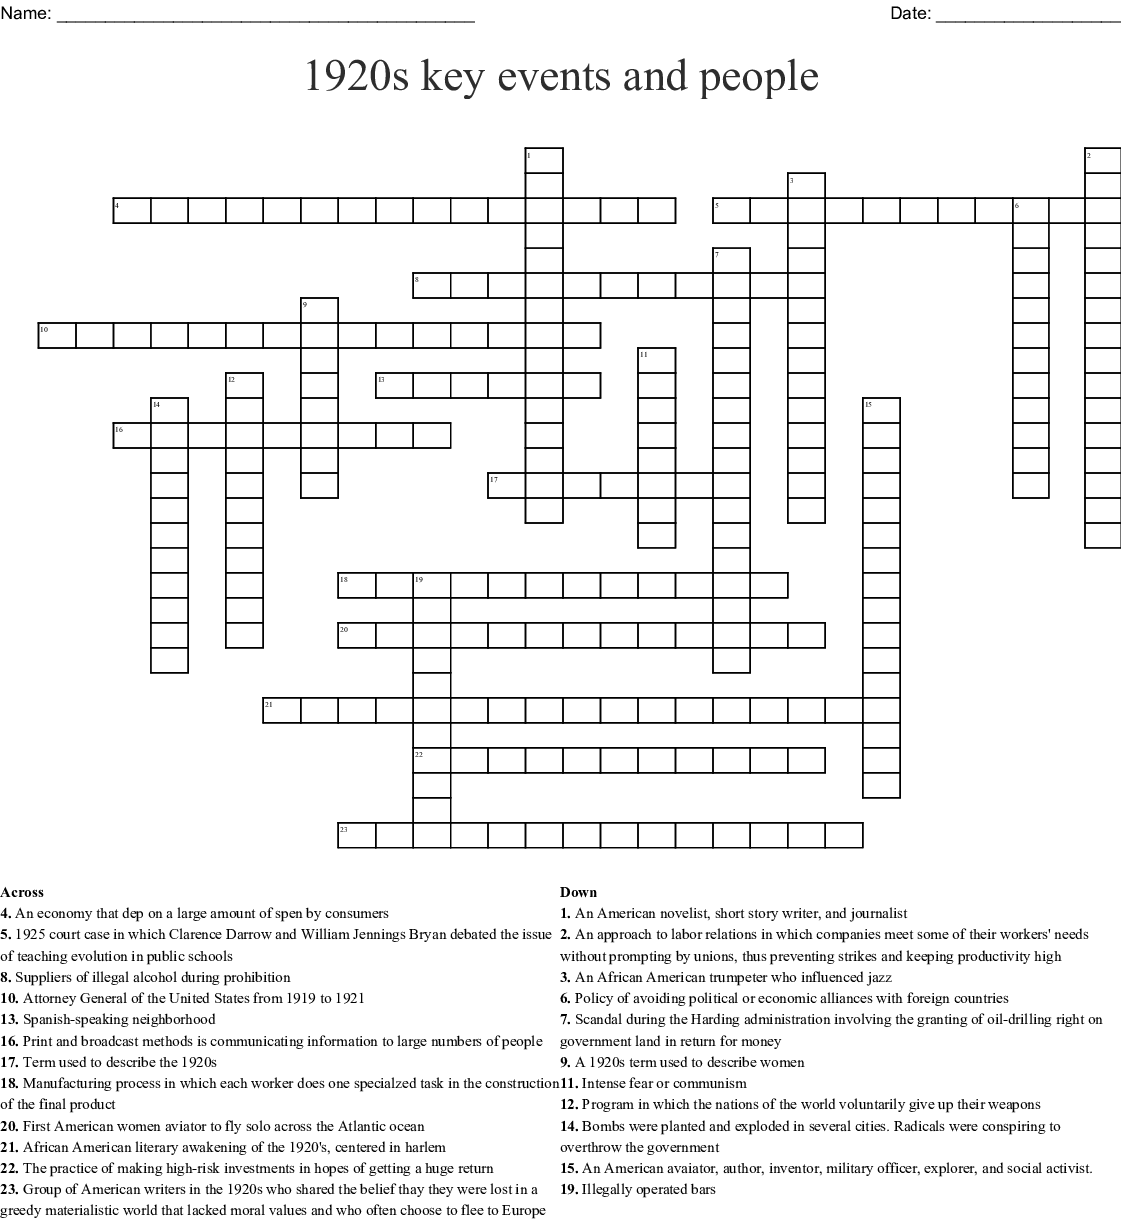 1920s Key Events And People Crossword Wordmint